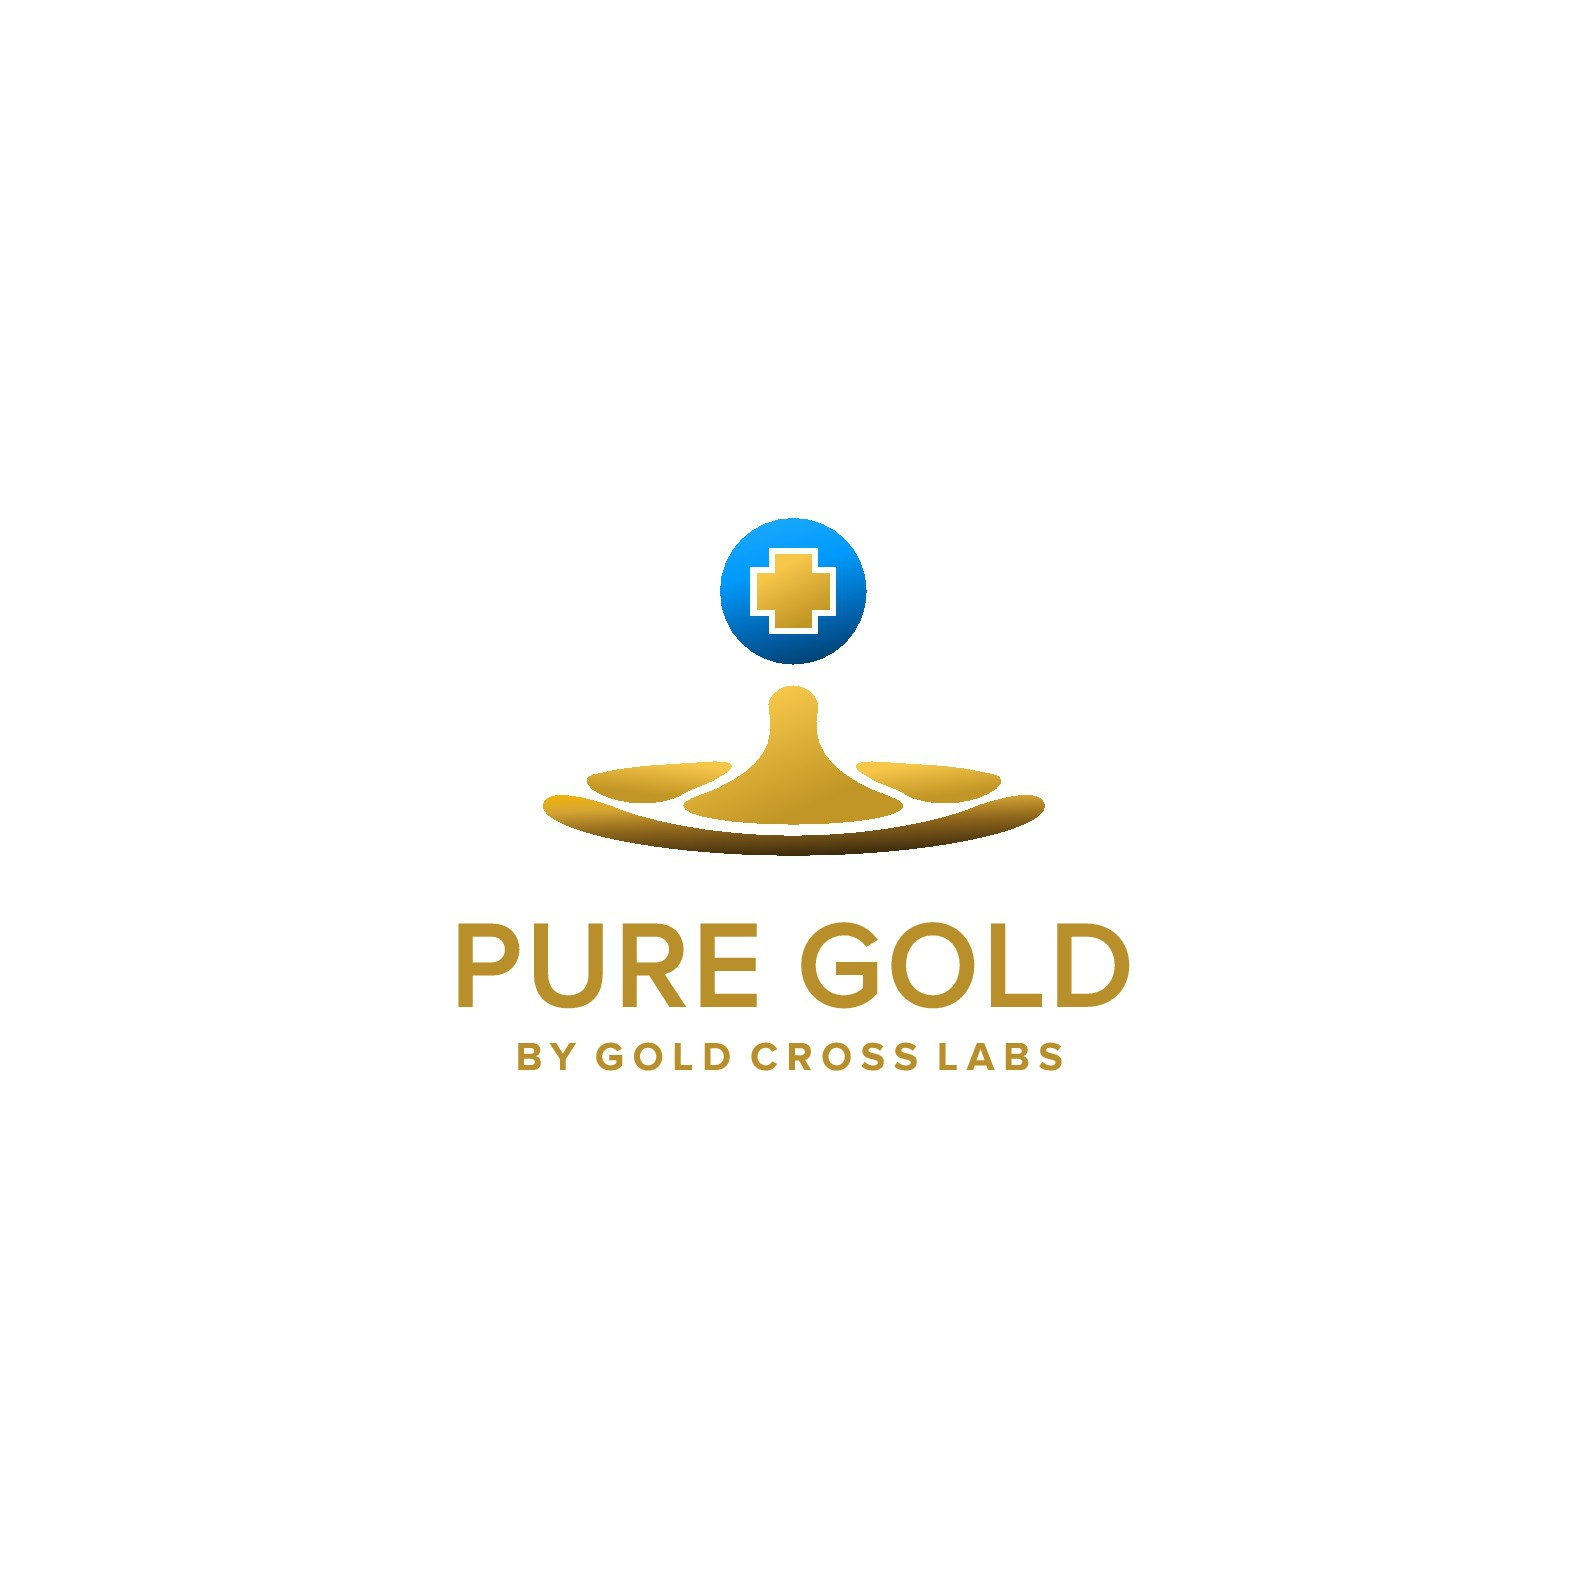 Pure Gold, by Gold Cross Labs